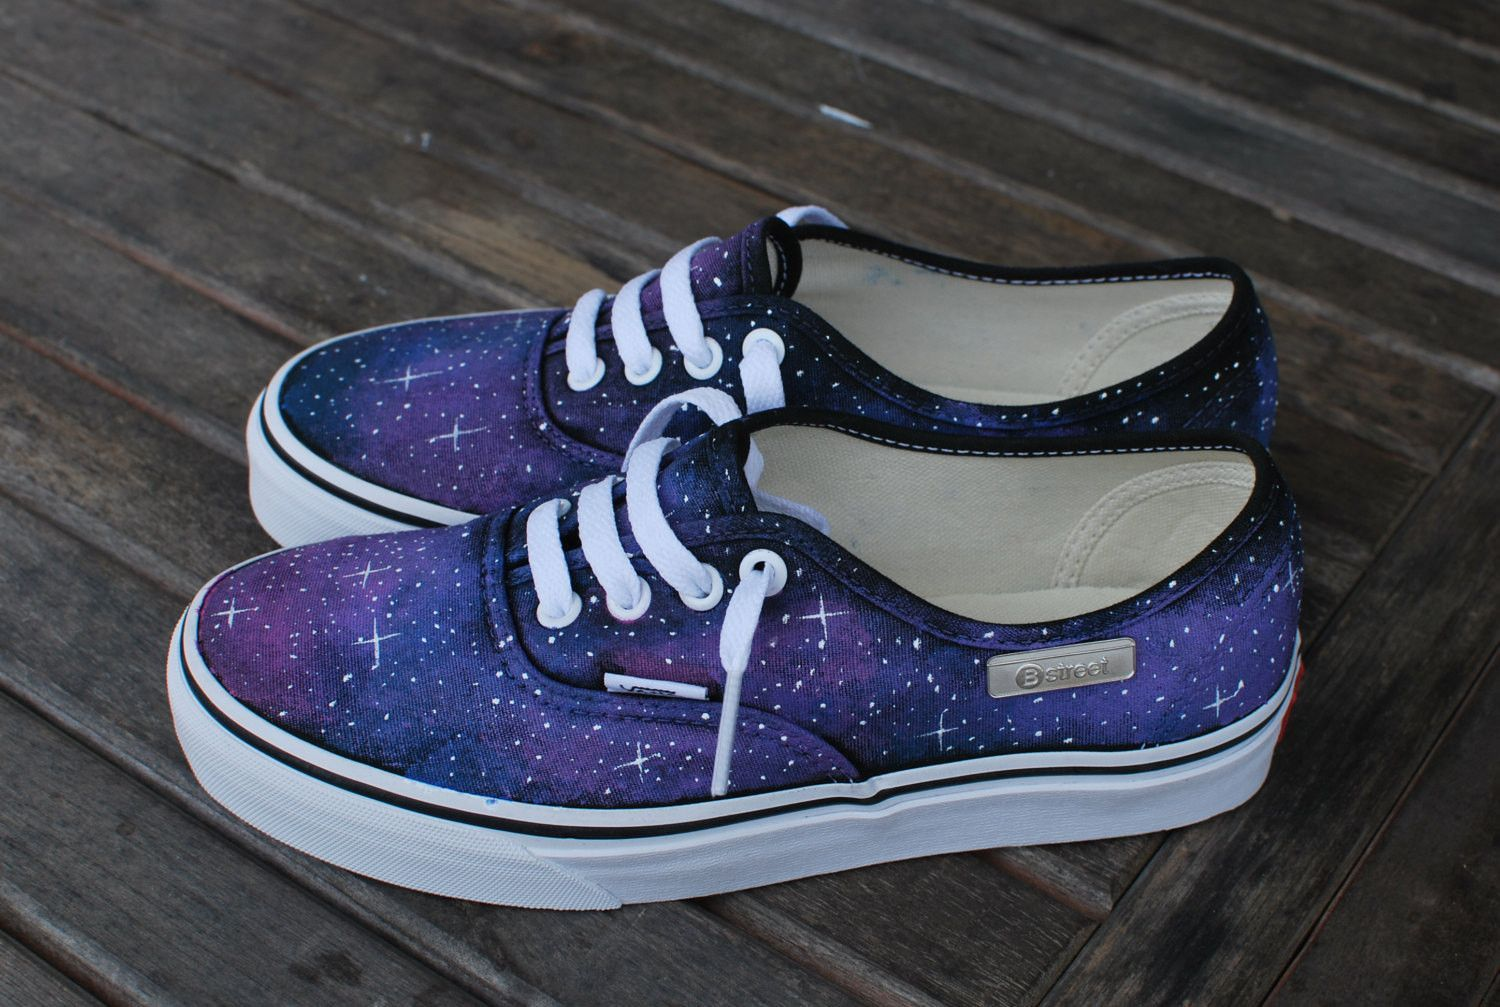 These one of a kind hand painted Authentic Vans shoes